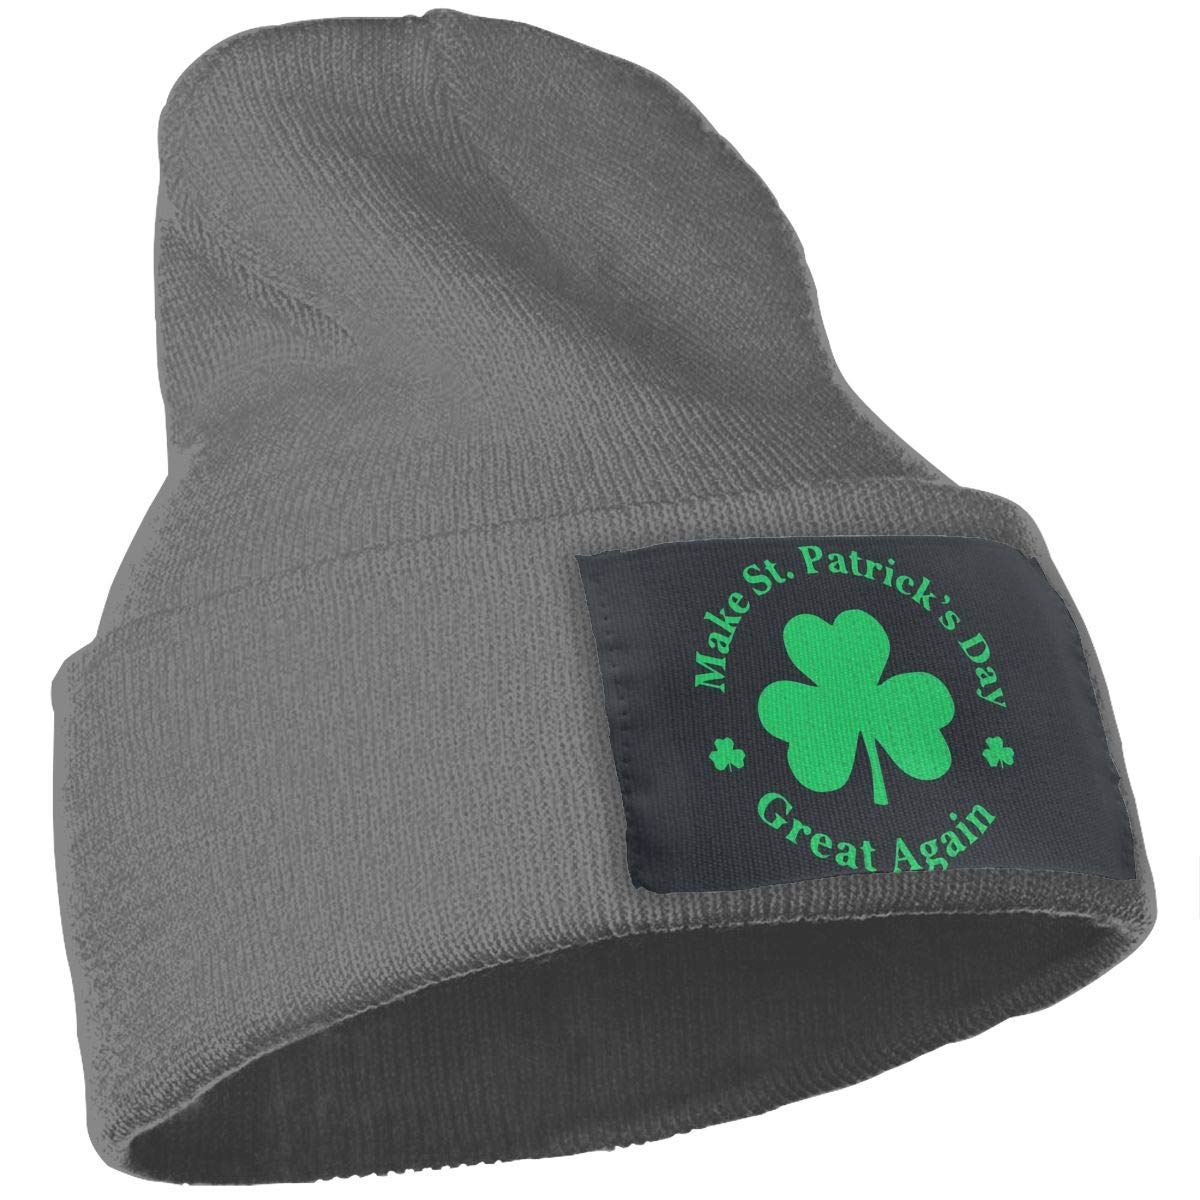 Make St Patricks Day Great Again Men Women Winter Warm Knitted Hat